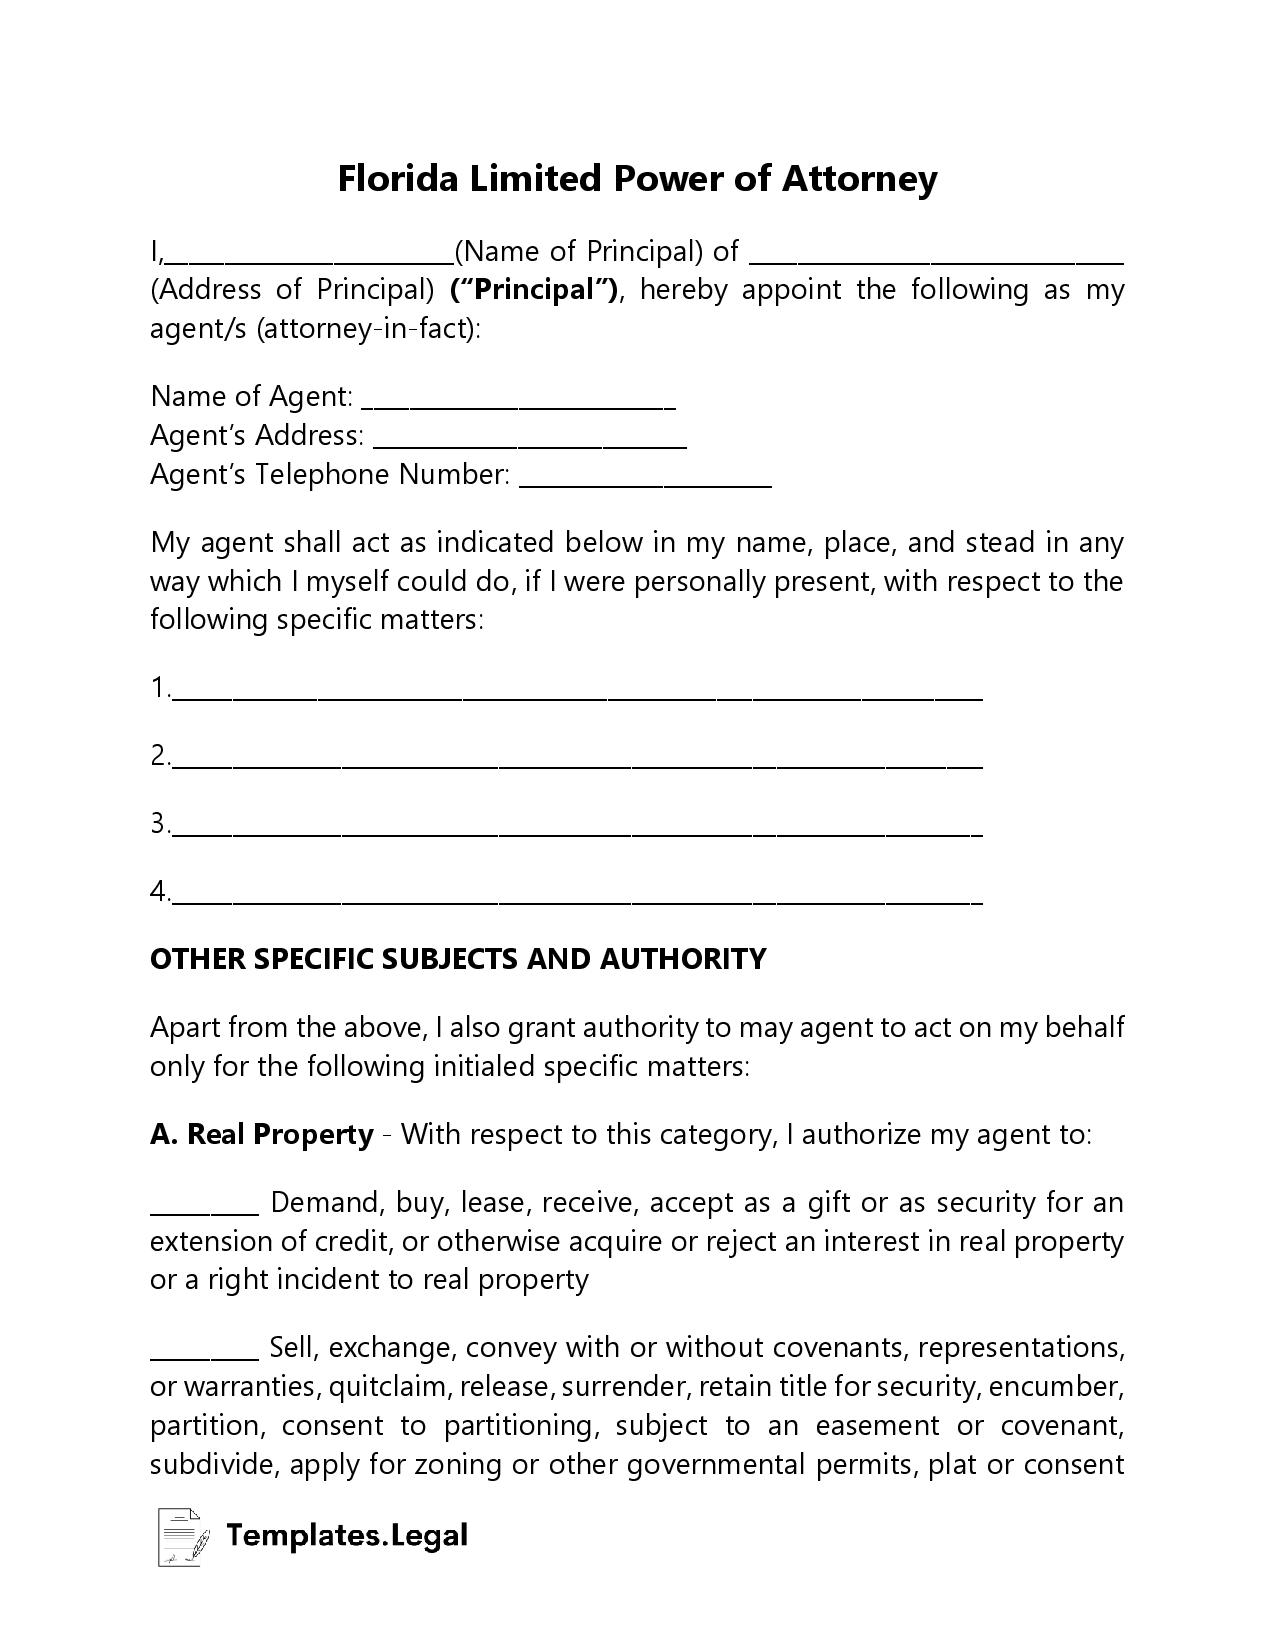 Florida Limited Power of Attorney - Templates.Legal